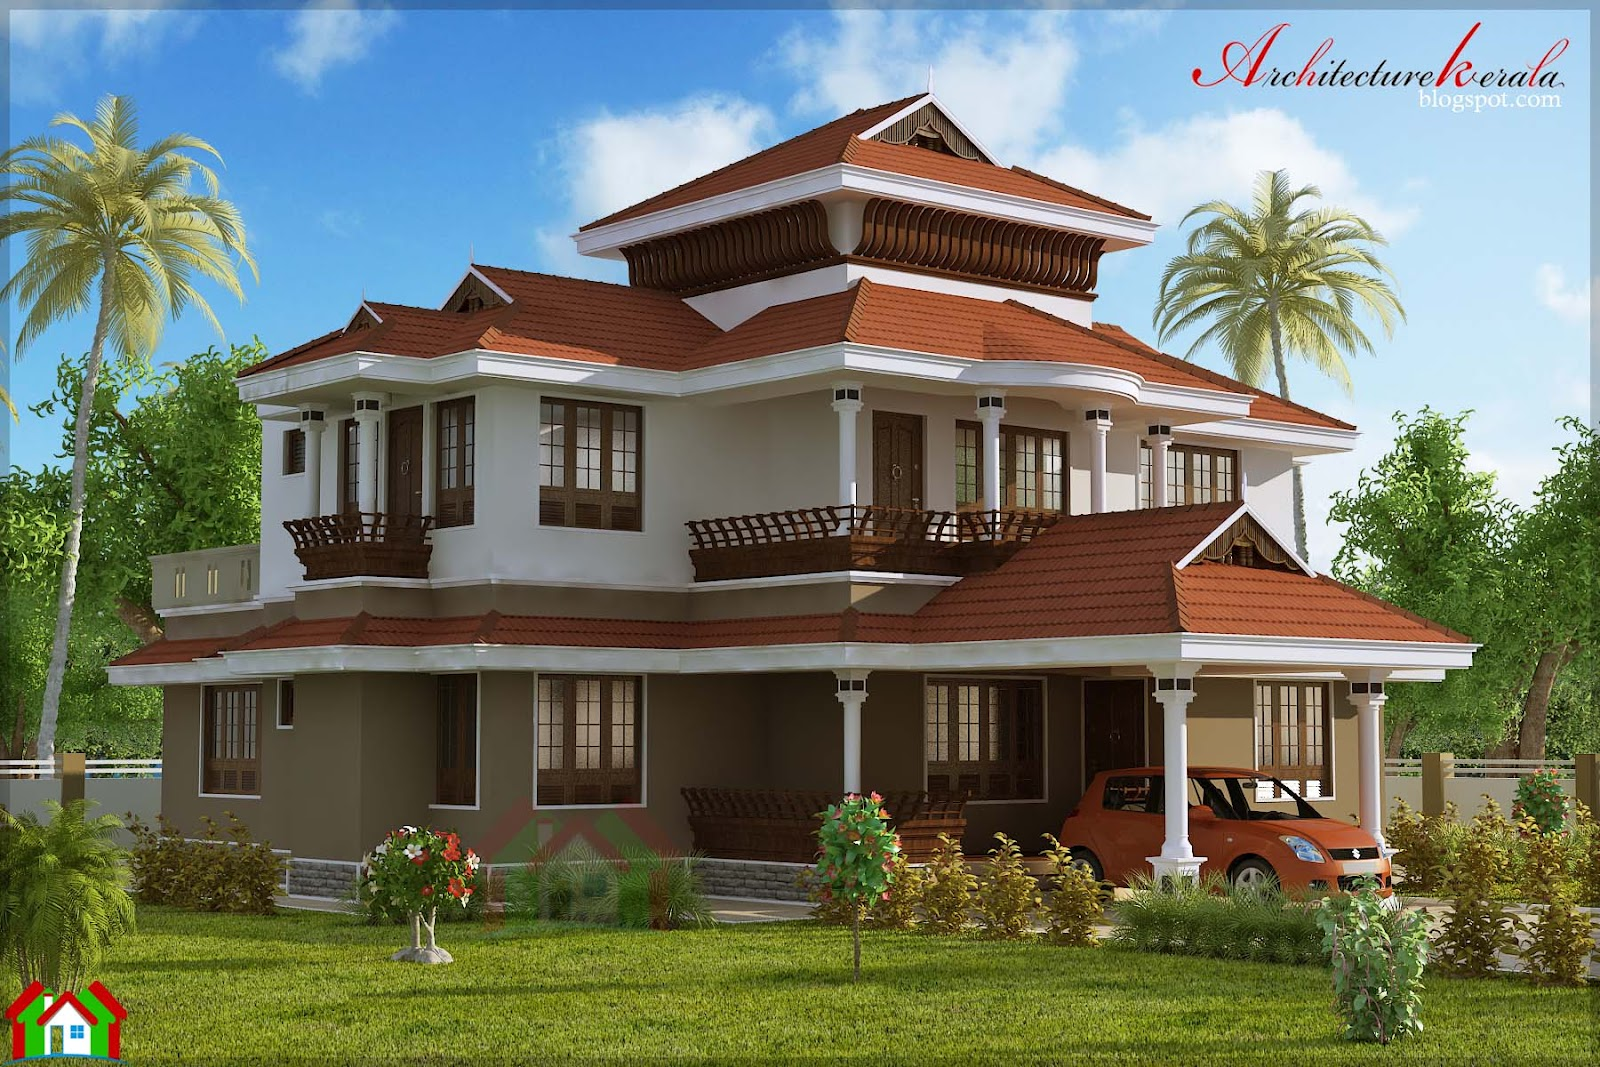 4 bed room traditional style house architecture kerala for Traditional house building